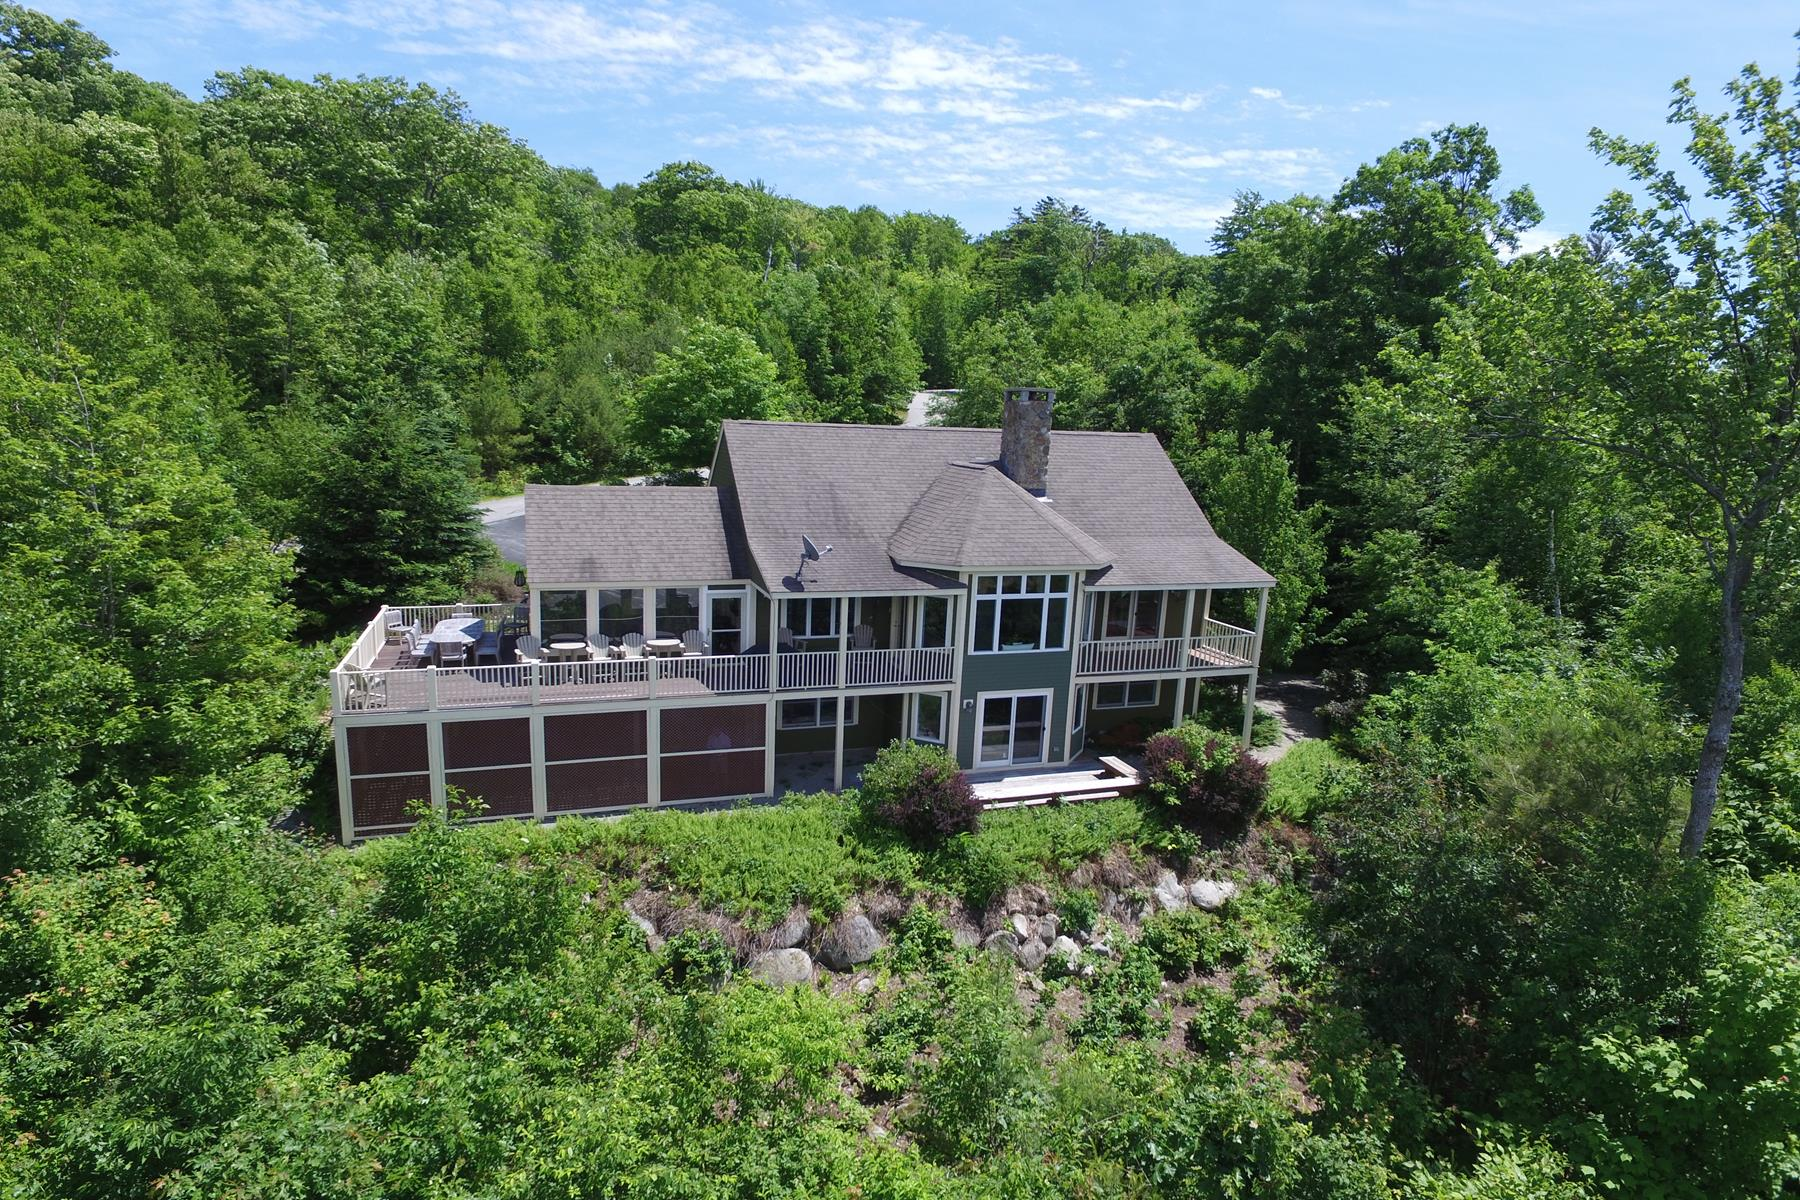 Single Family Home for Sale at 41 Blye Hill Landing South, Newbury Newbury, New Hampshire, 03255 United States